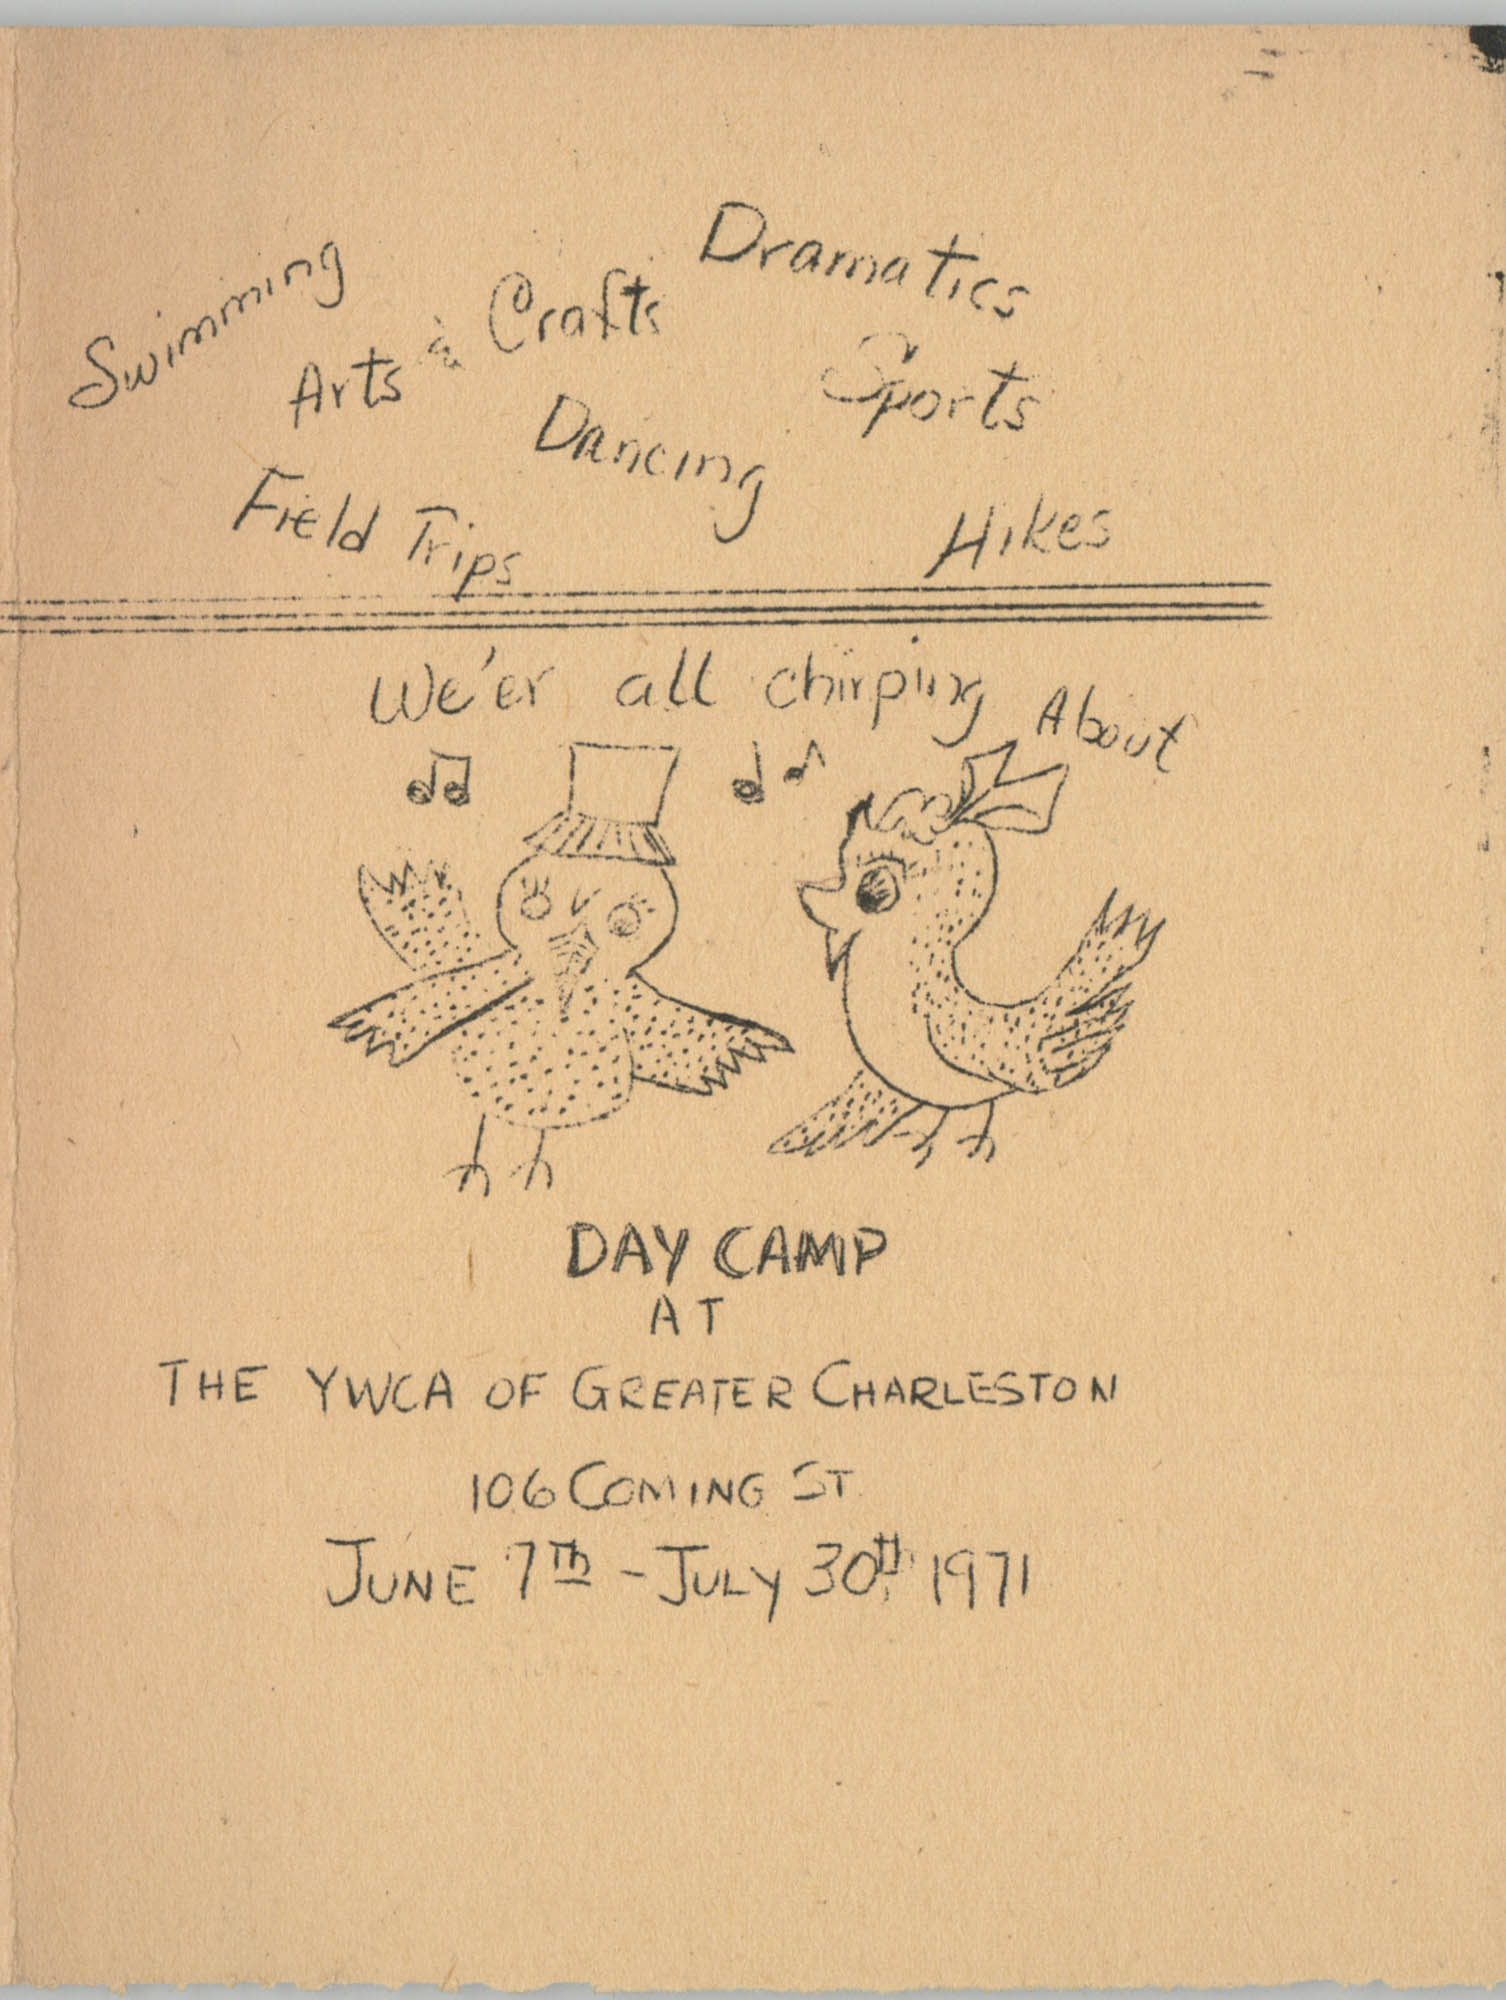 Y.W.C.A. of Greater Charleston Day Camp Application, July 1971